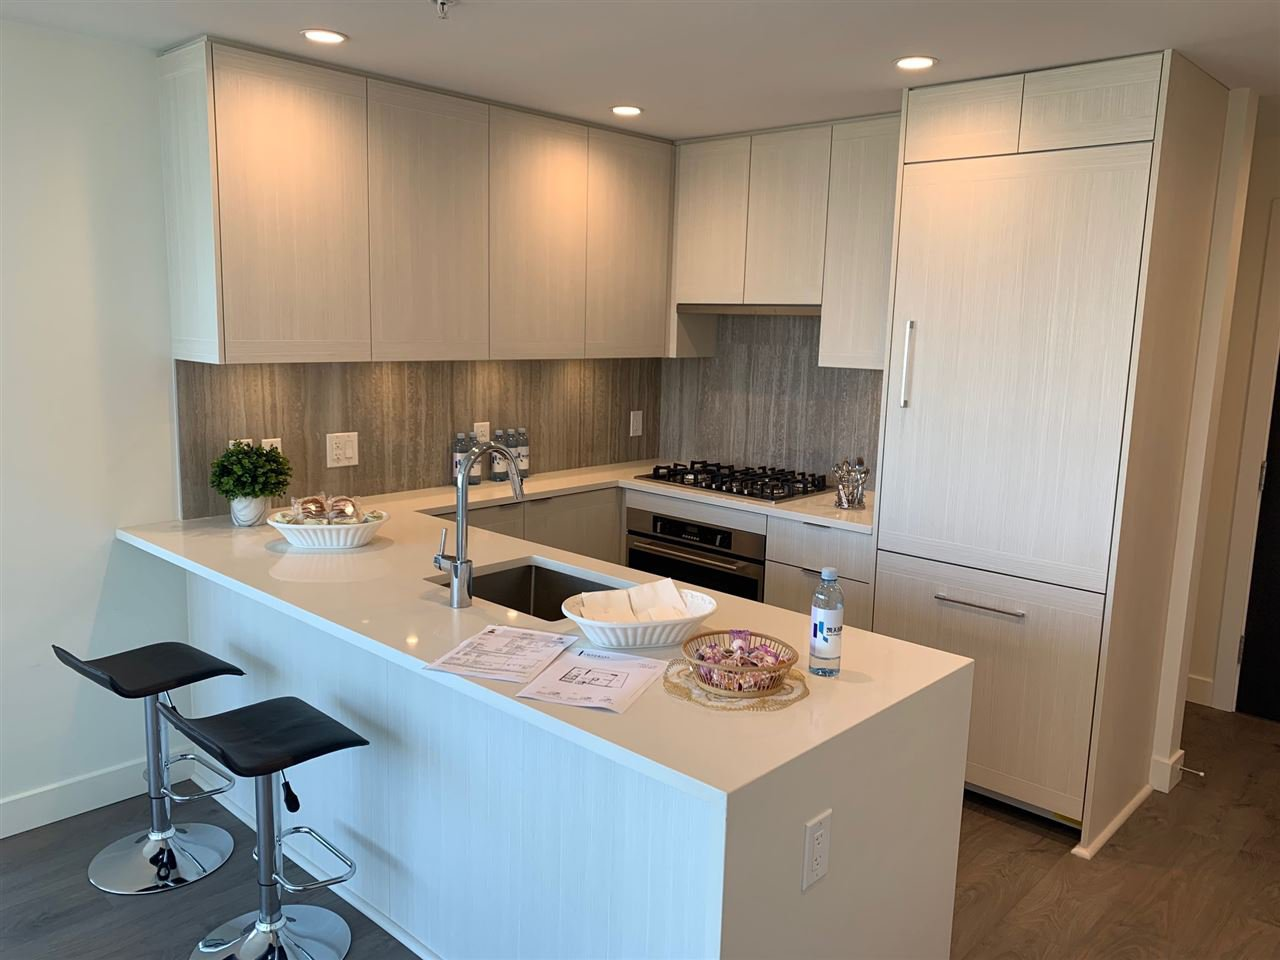 """Main Photo: 1502 5051 IMPERIAL Street in Burnaby: Metrotown Condo for sale in """"IMPERIAL"""" (Burnaby South)  : MLS®# R2393456"""